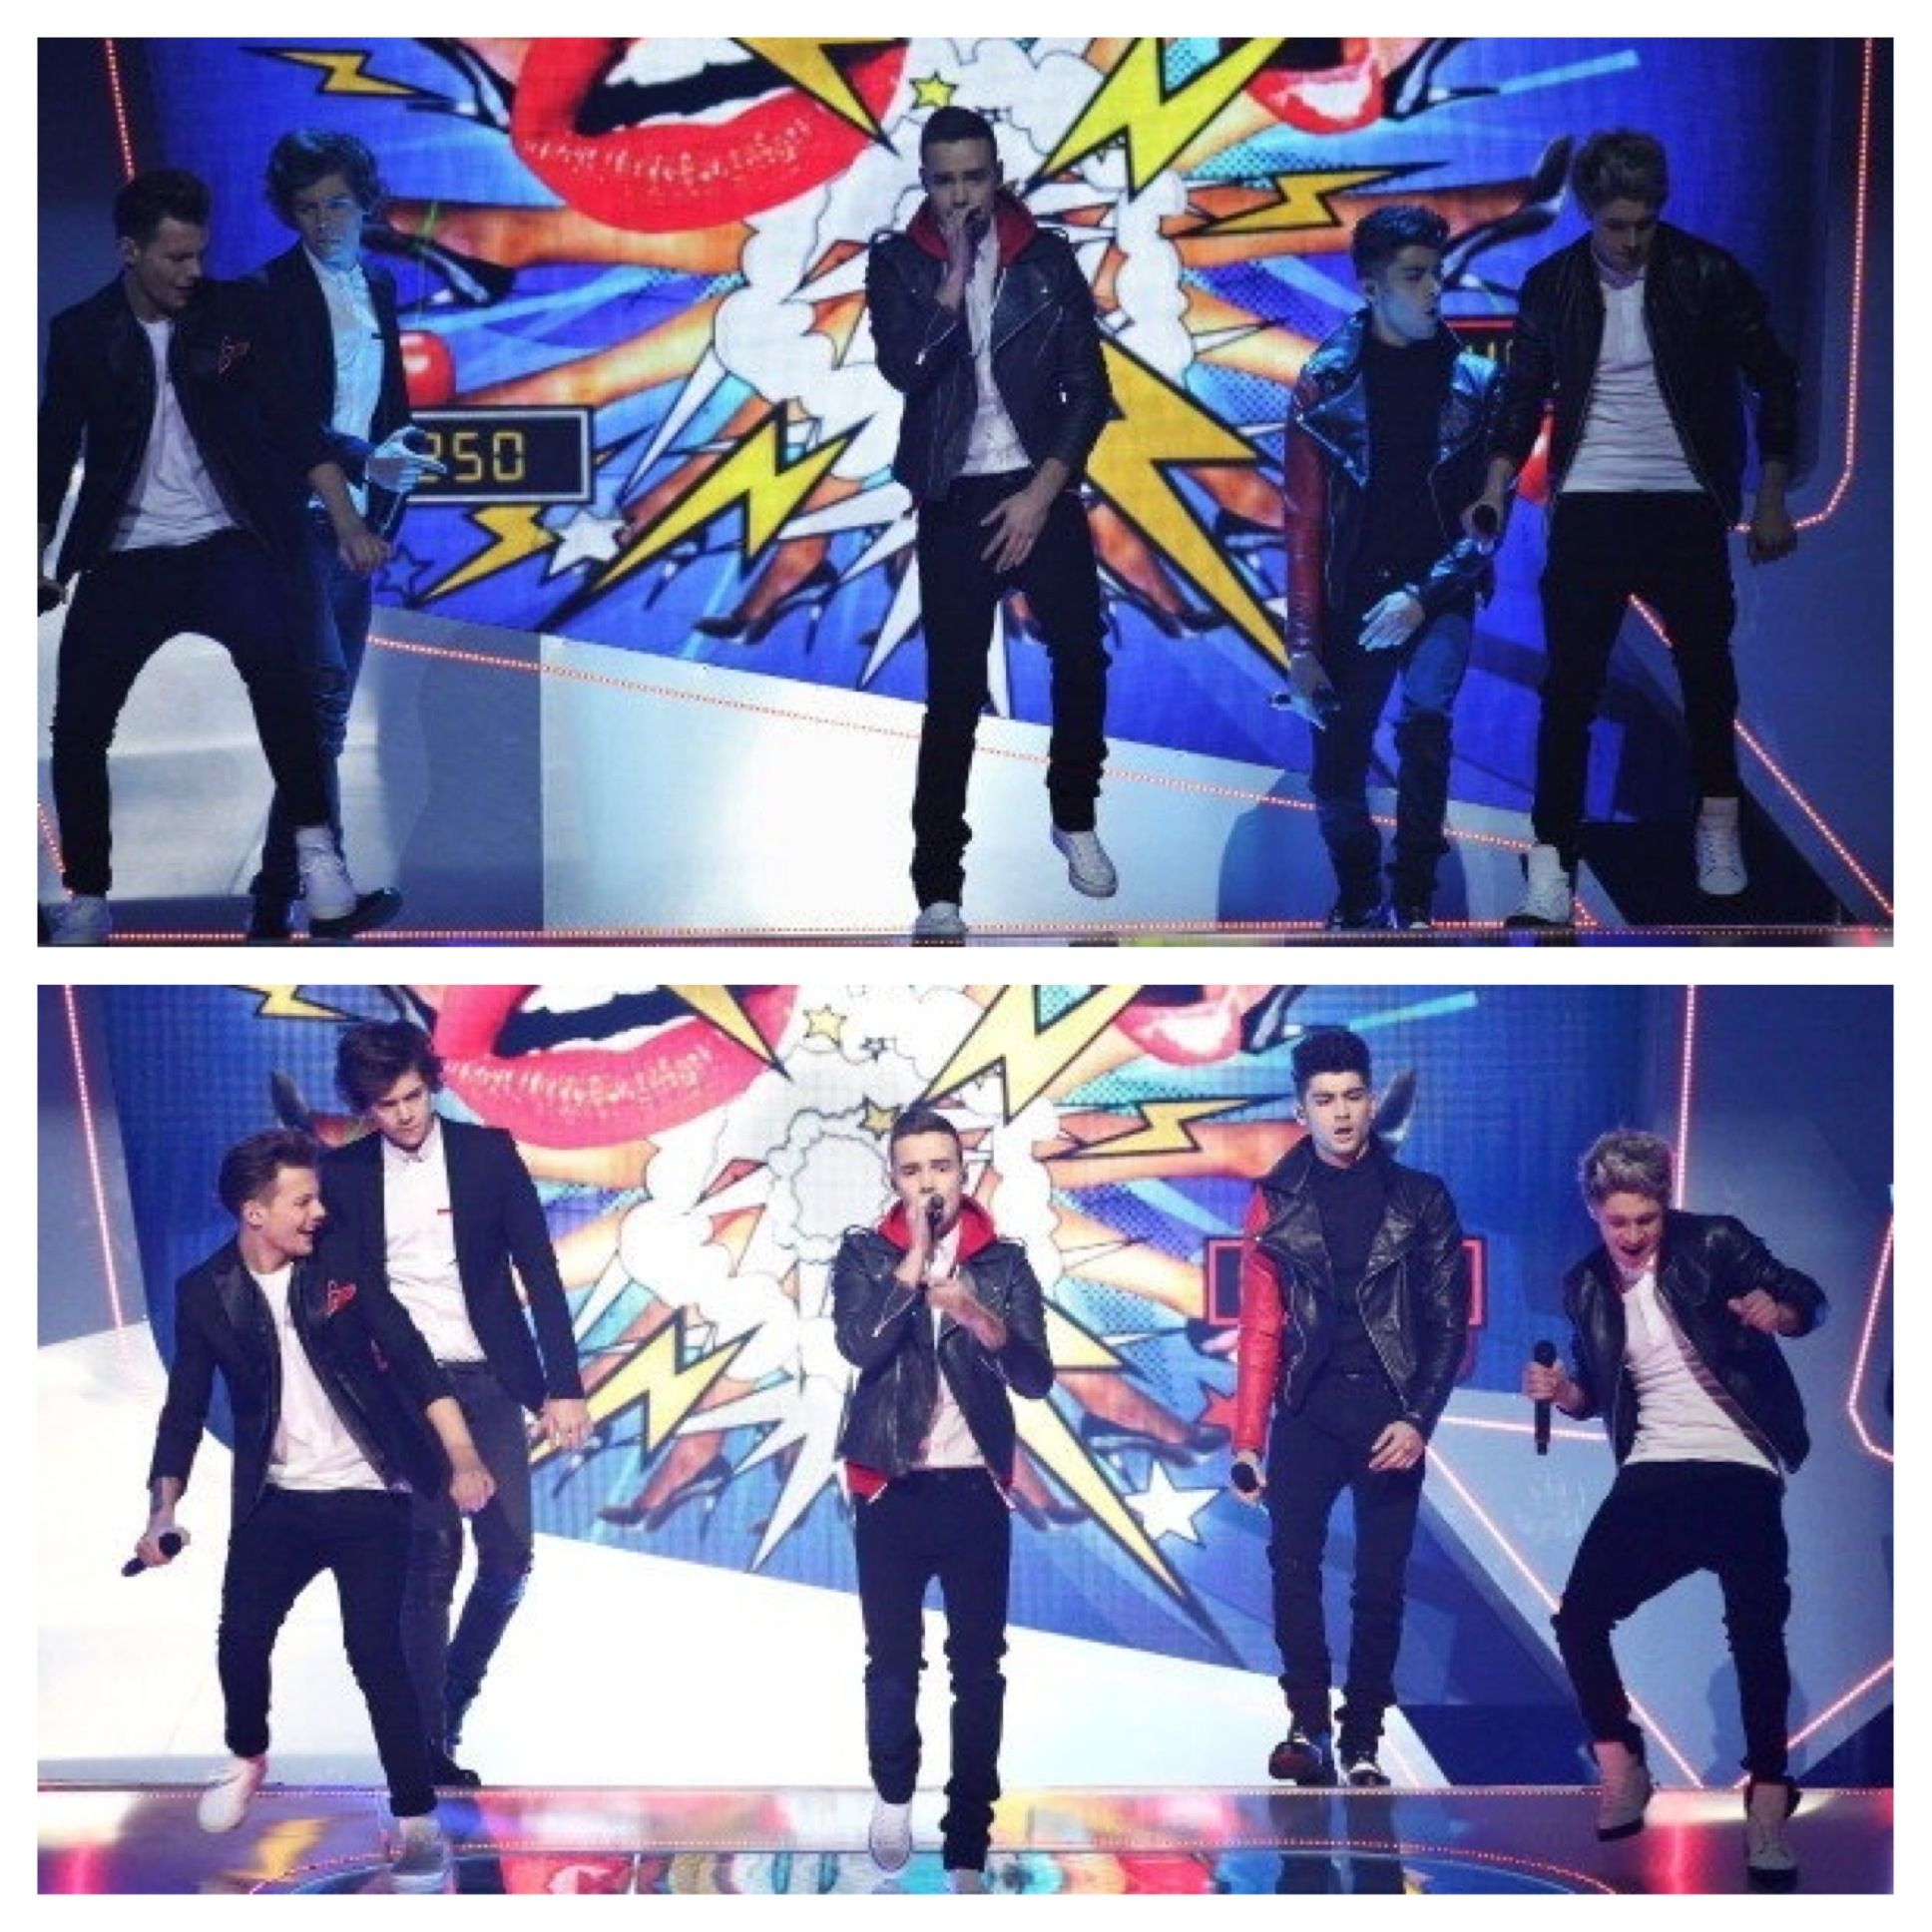 One Direction 2013 Brit Awards haha love Niall and Louis dance!